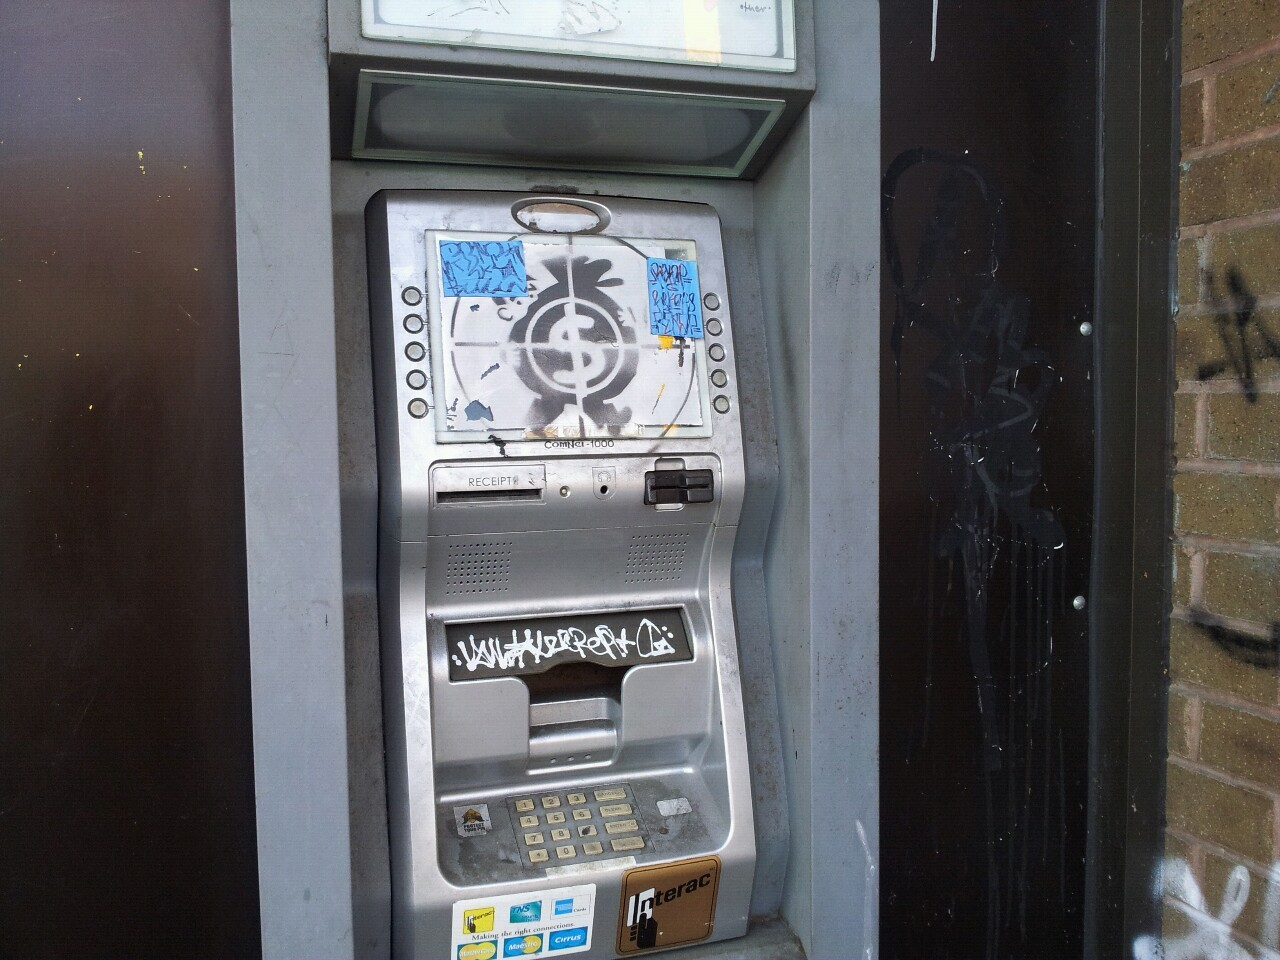 This abandoned cash machine has been accumulating art for years.